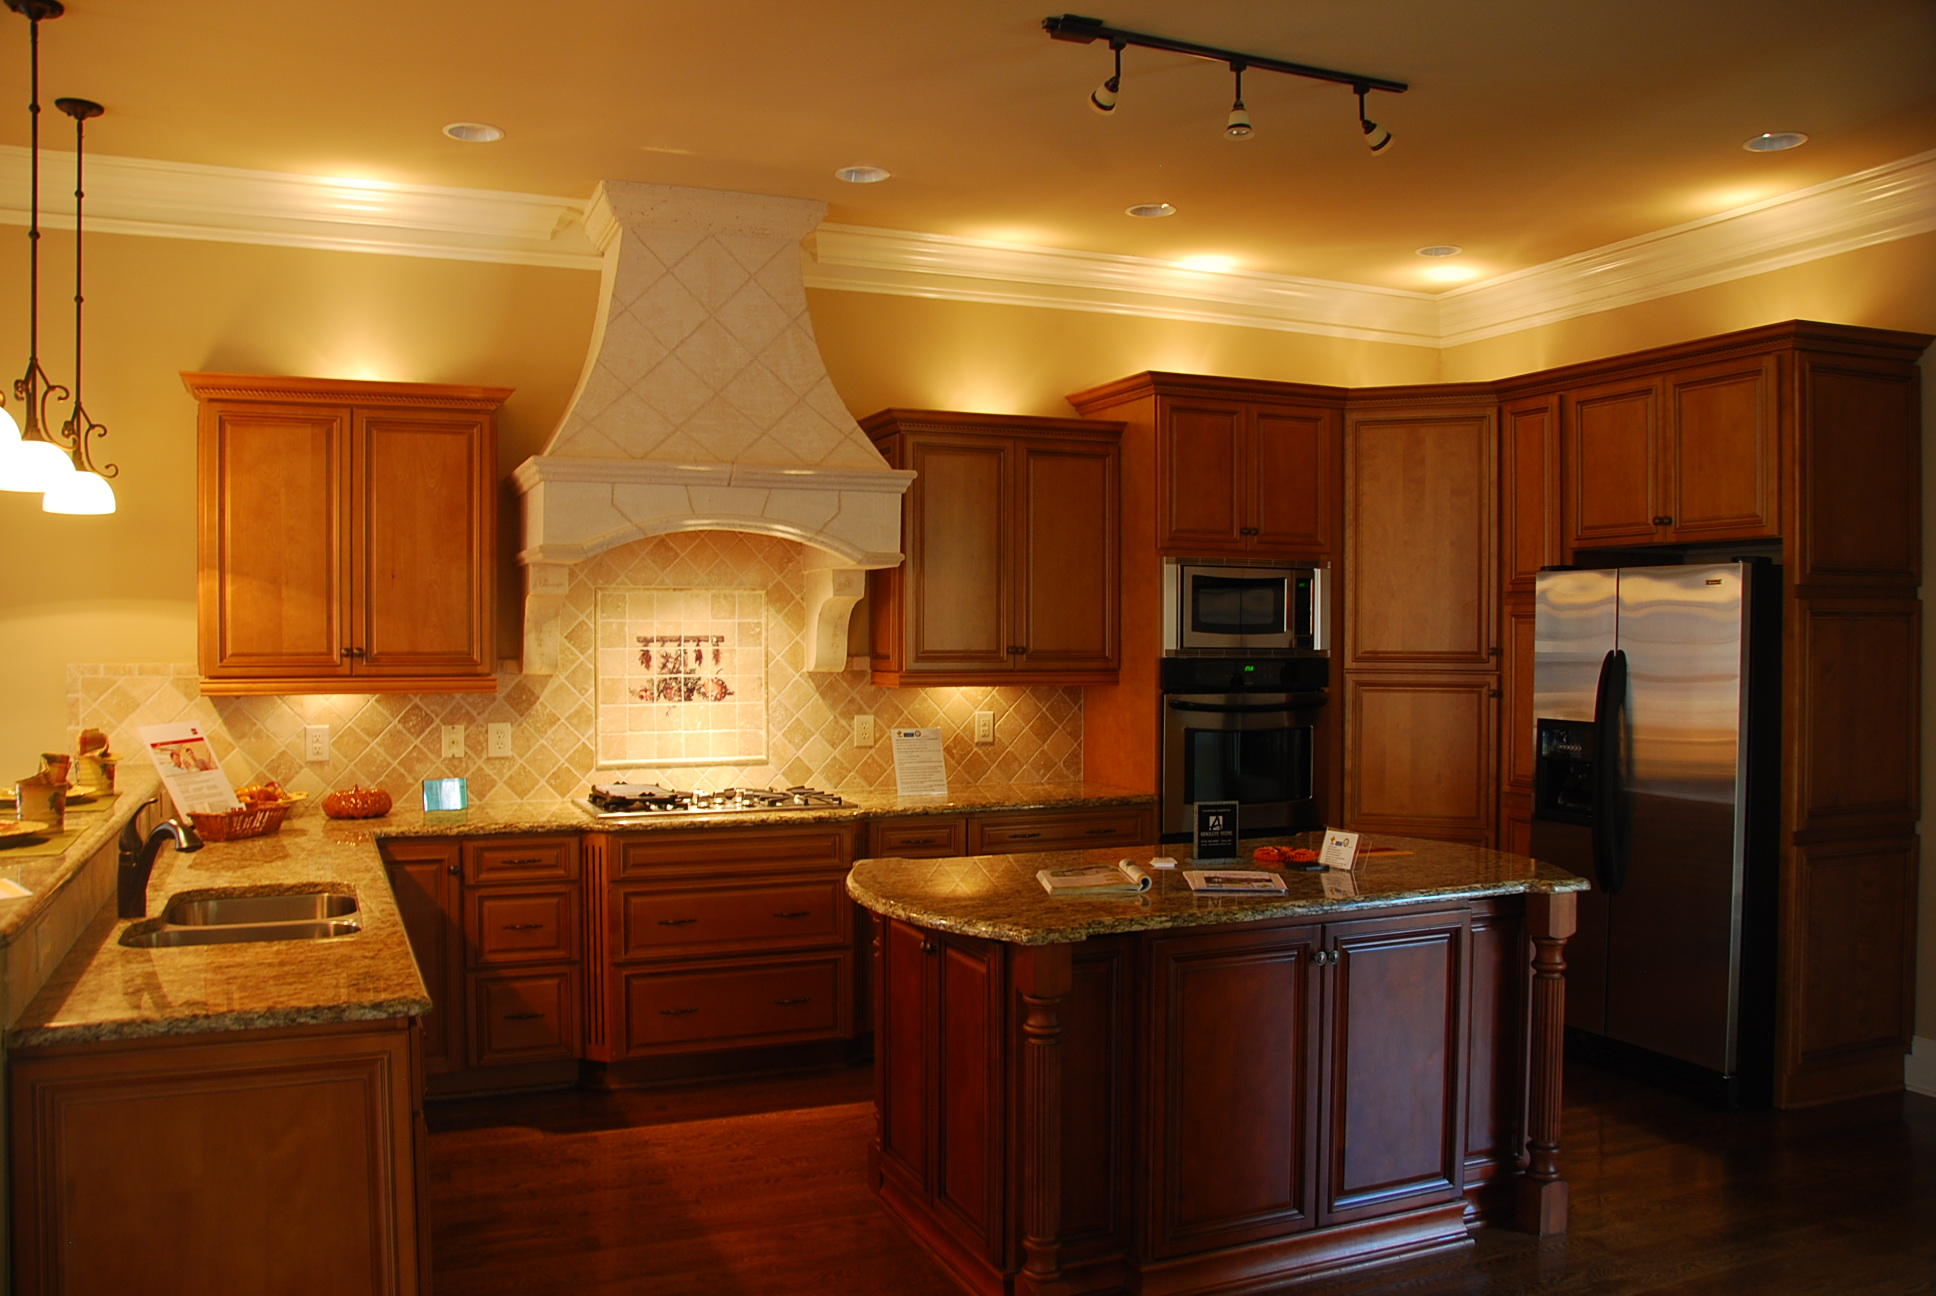 Tahoe-cafe-kitchen-cabinets-with-island